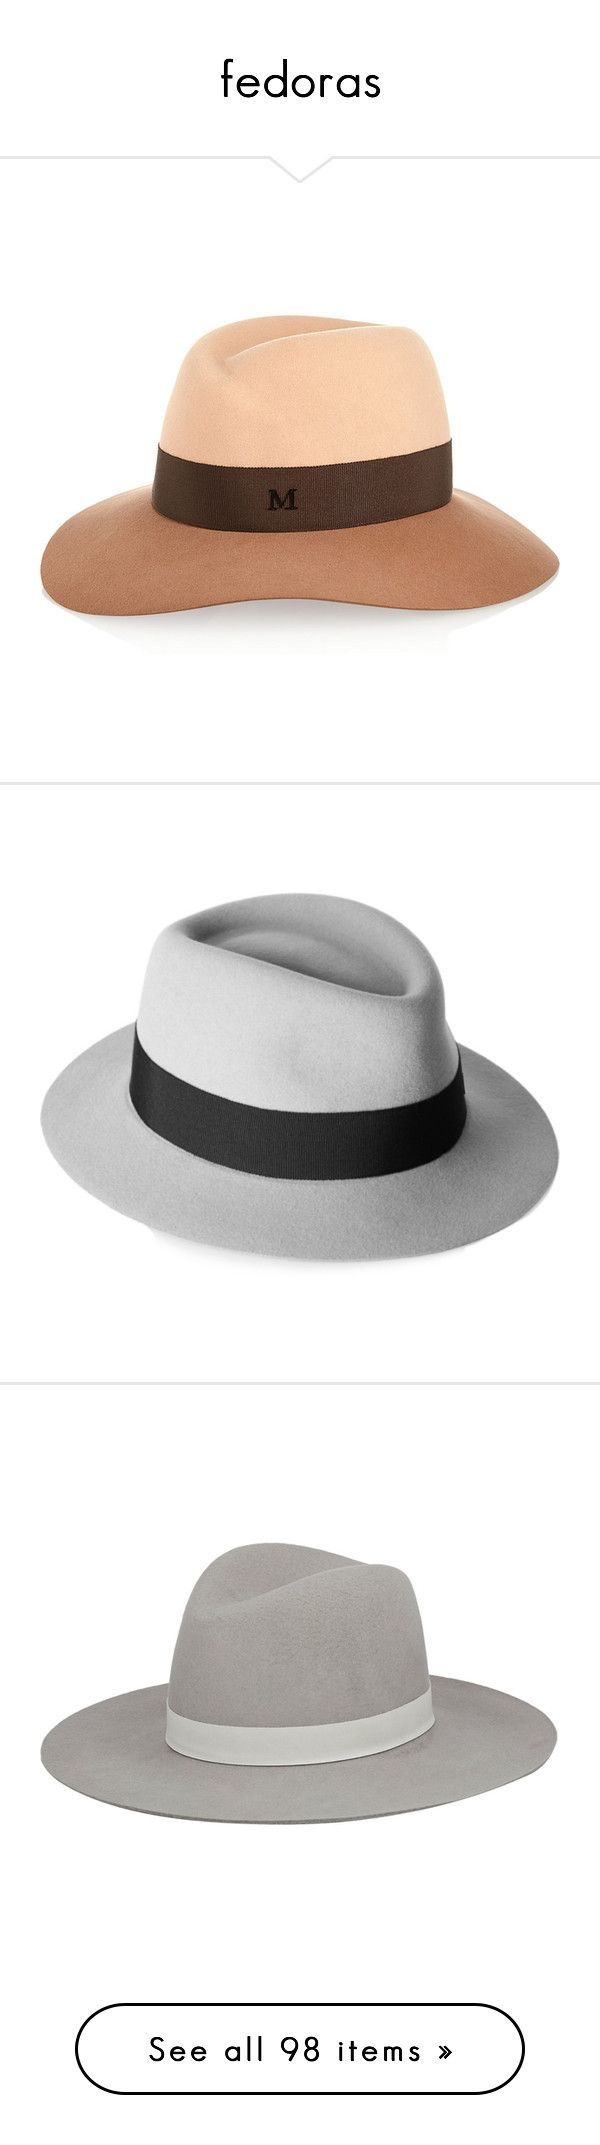 """""""fedoras"""" by victoriaxo97 ❤ liked on Polyvore featuring accessories, hats, maison michel, felt fedora hat, two tone hat, rabbit felt hat, felt hat, light gray, rabbit fur hat and maison michel hats"""